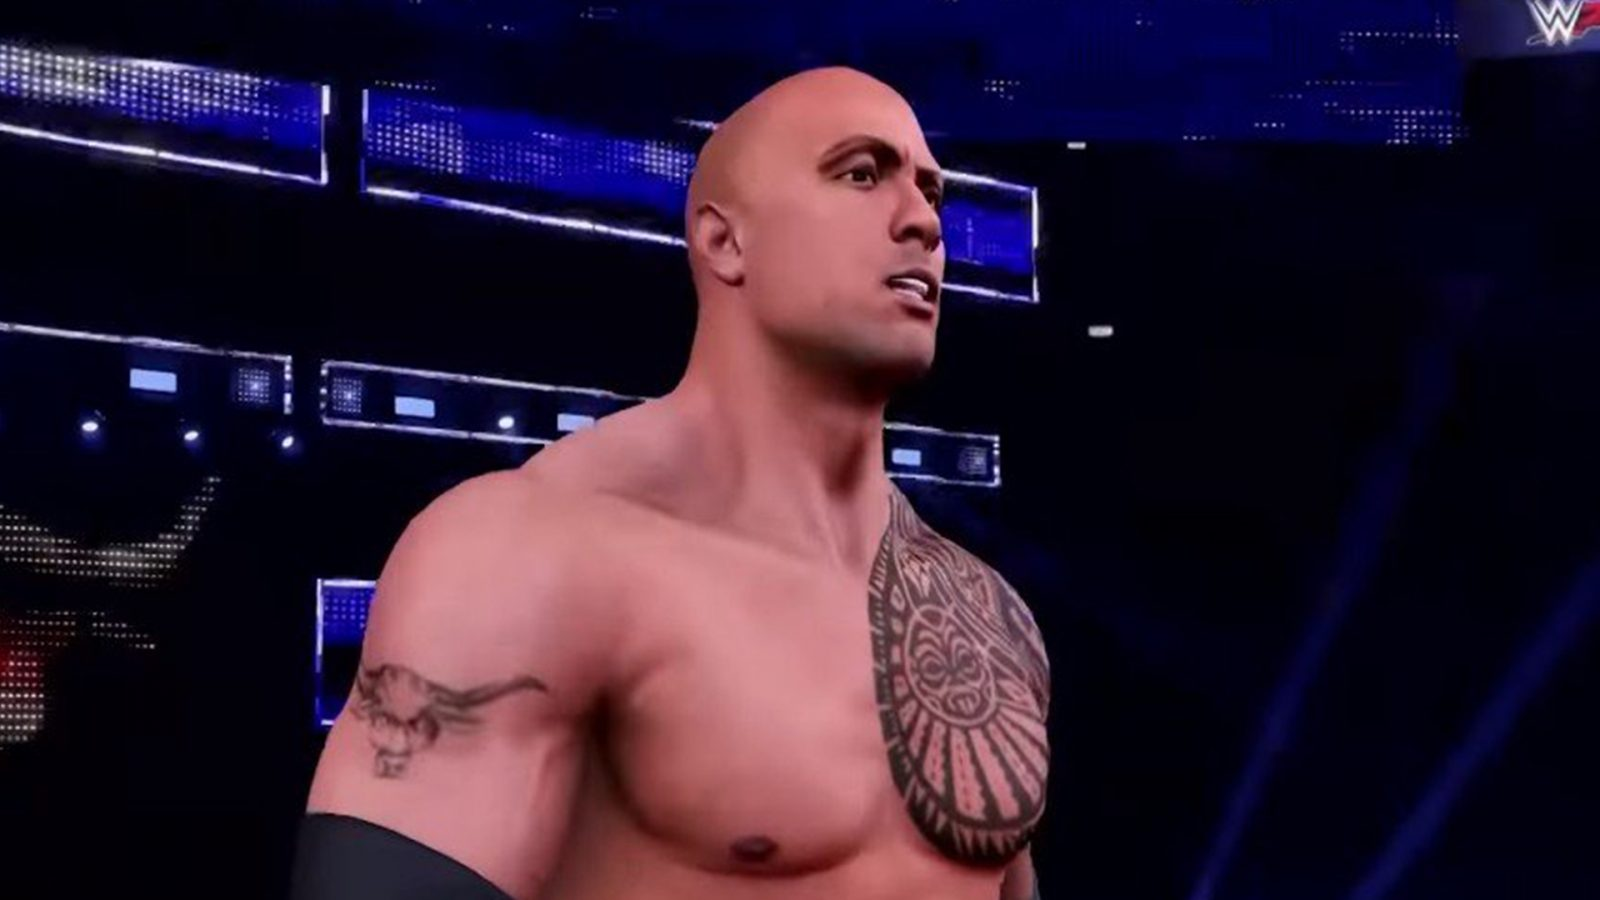 WWE 2K20 became unplayable when we got to 2020